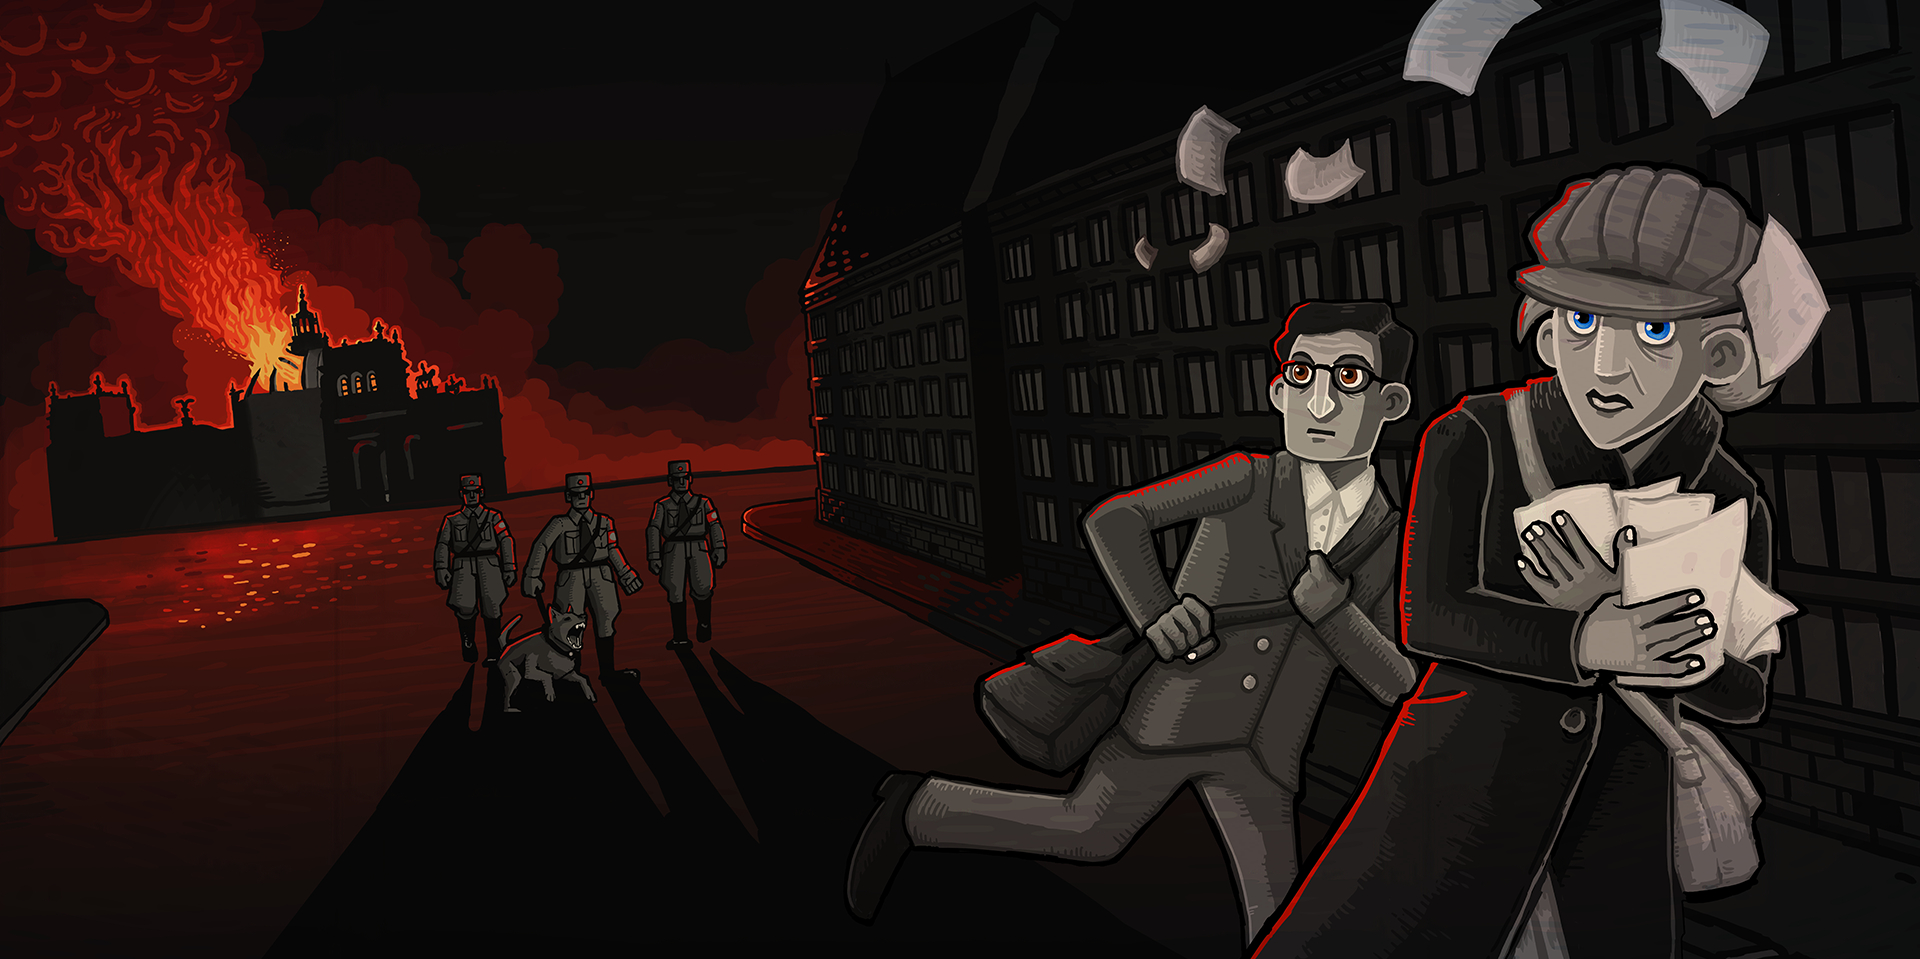 Lead a resistance against the Nazis in Through the Darkest of Times, out now for iOS and Android